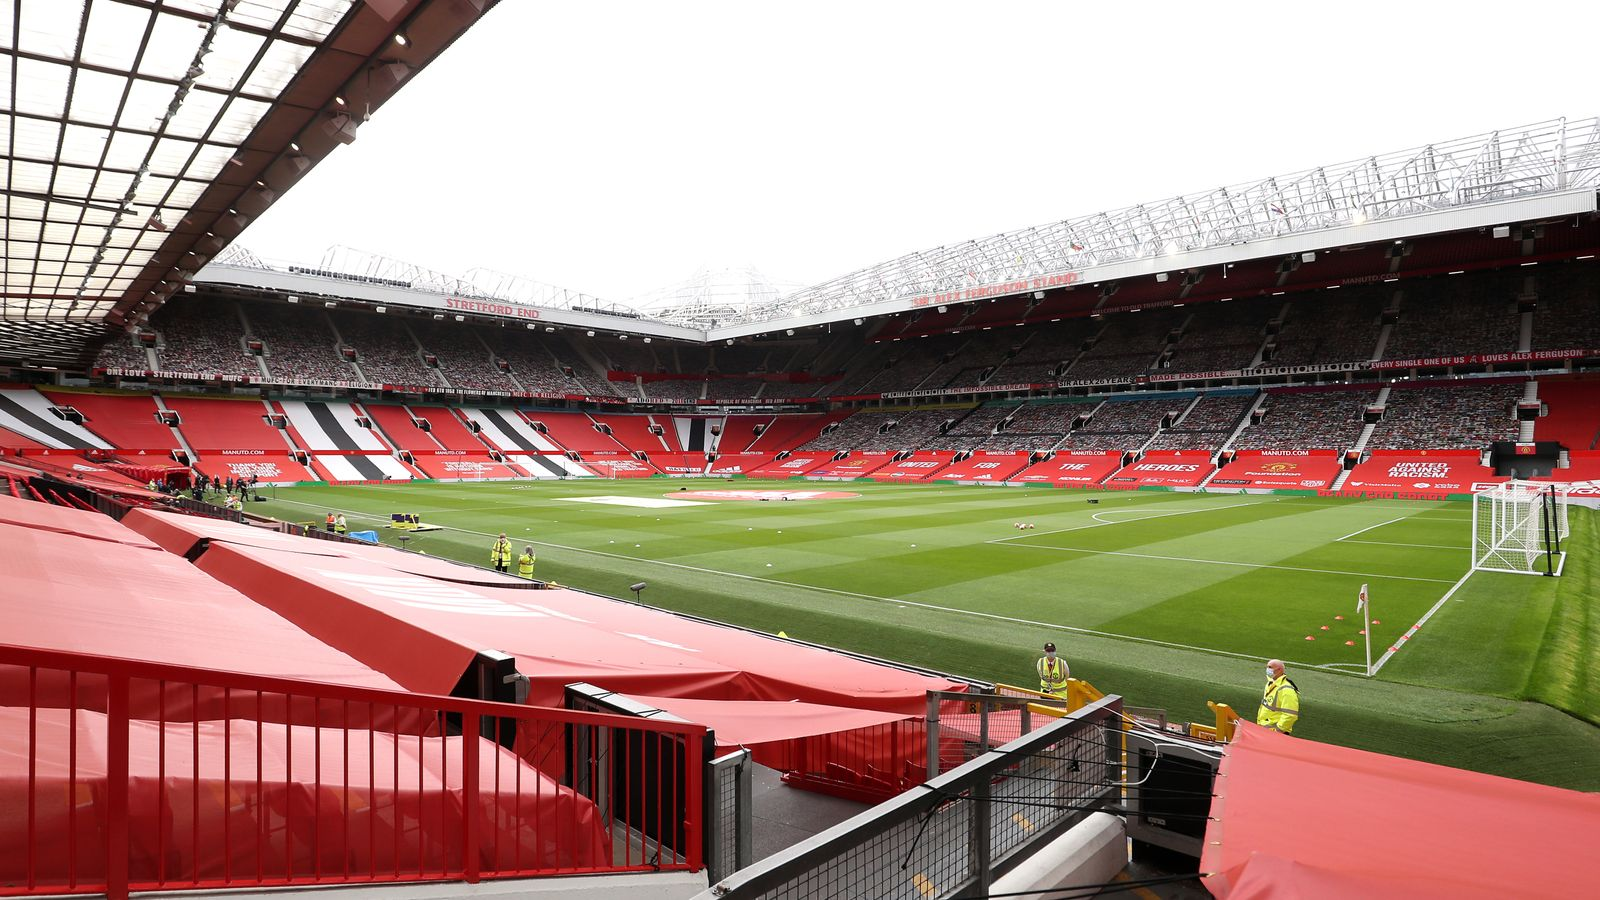 Manchester United Women will play at Old Trafford for the first time when the team hosts West Ham in the WSL |  Football News